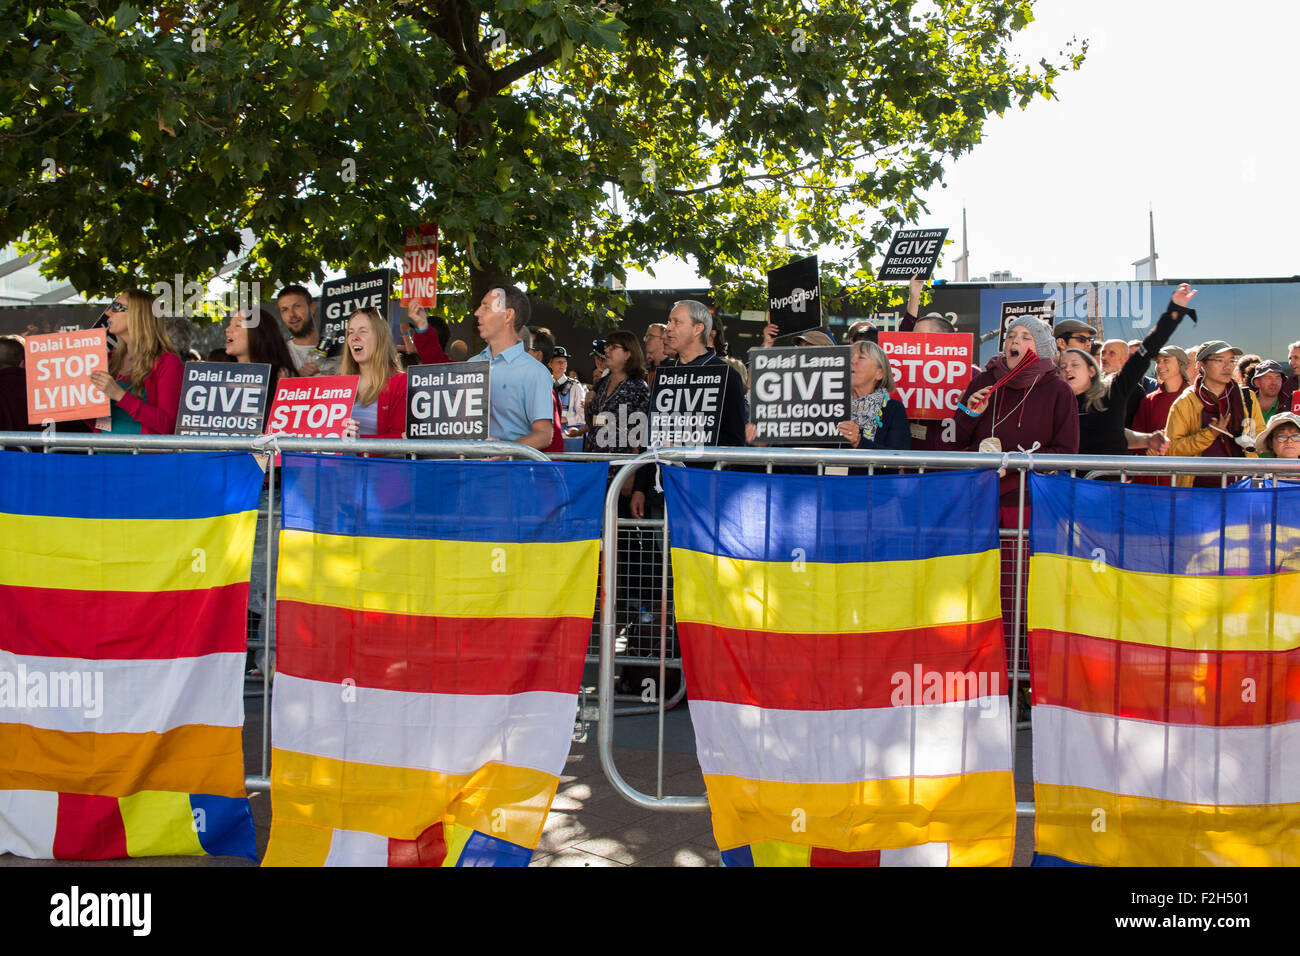 London, UK  19th September, 2015  Protest organised by